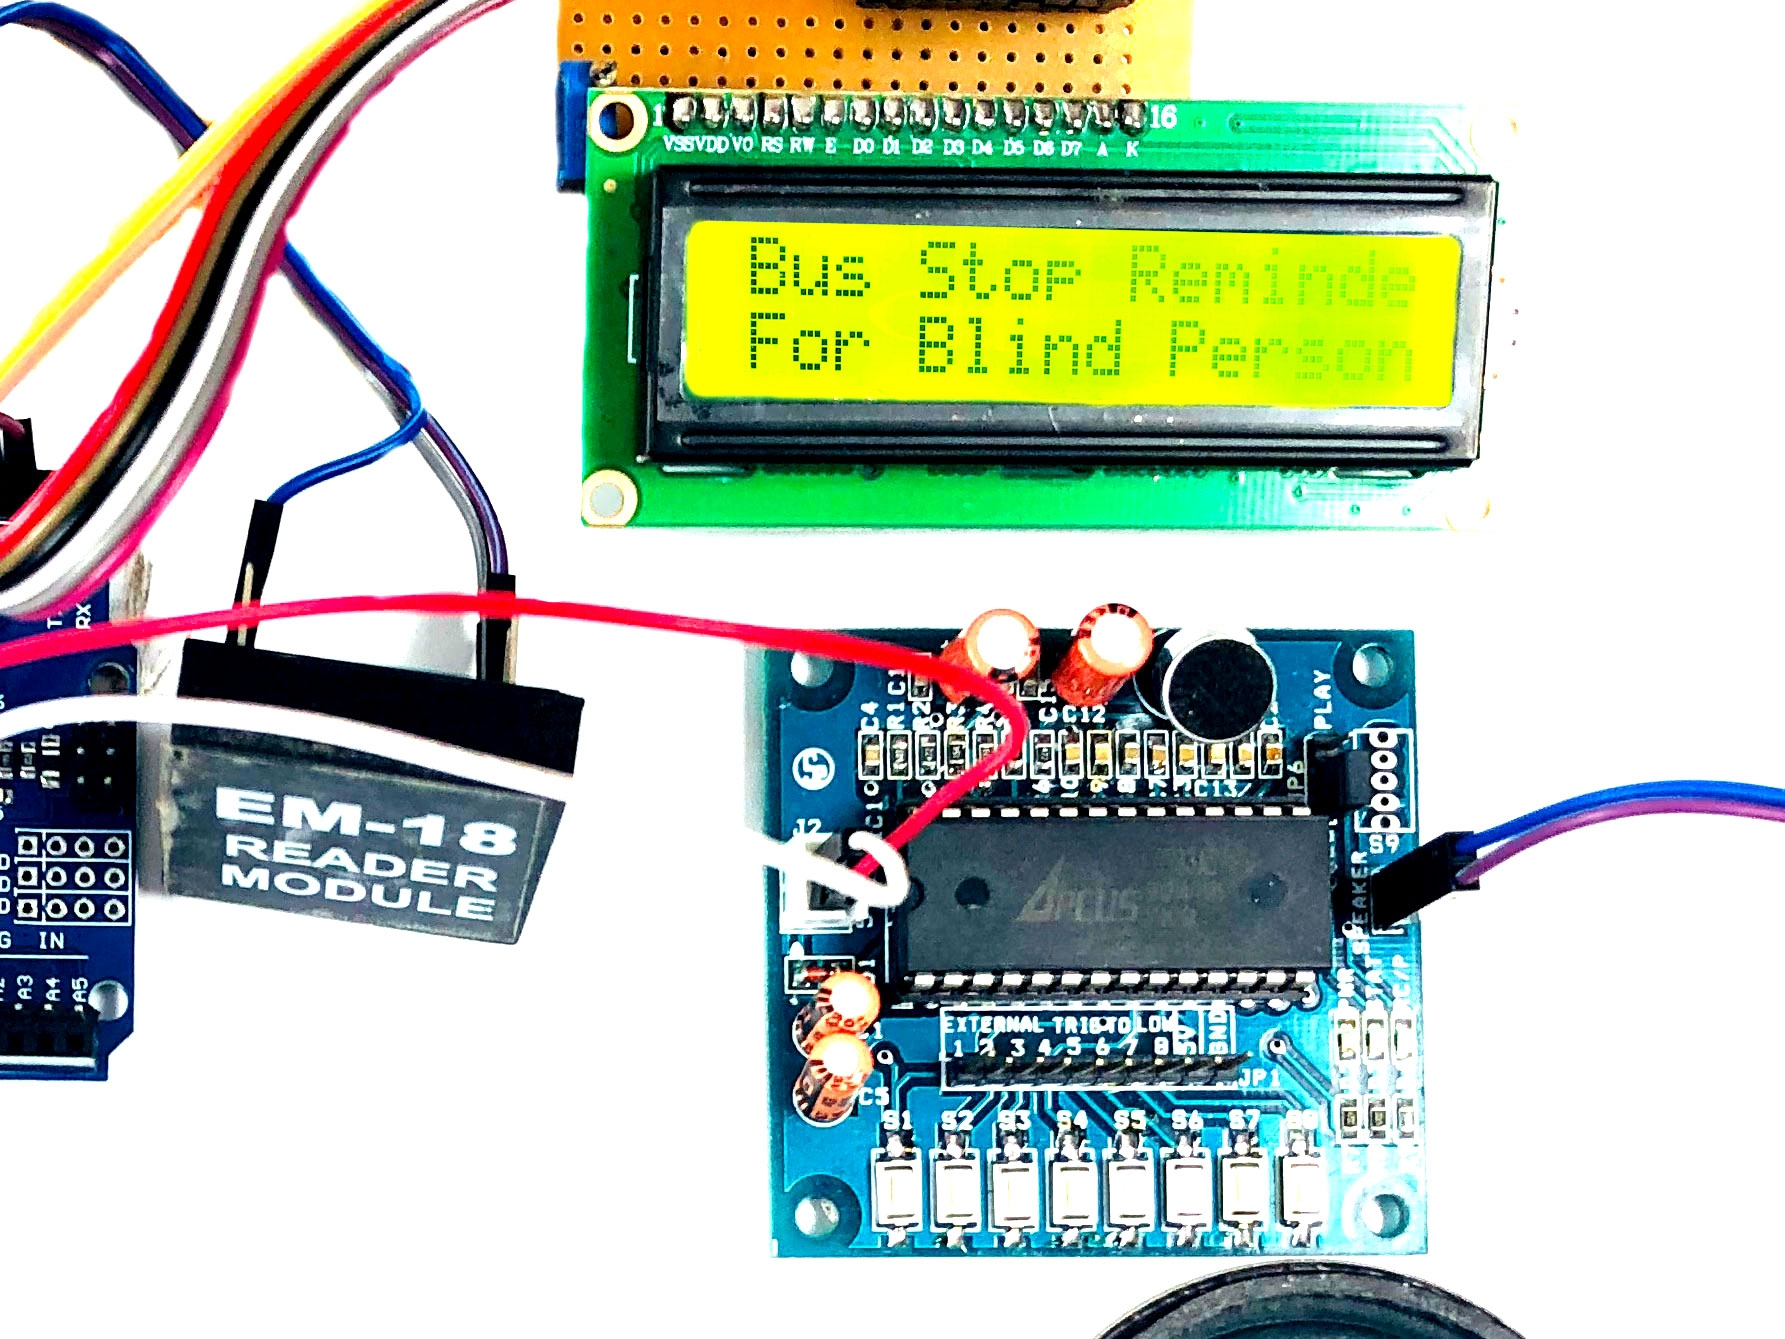 Bus Stop Reminder For Blind Person Using Rfid In Arduino Uno